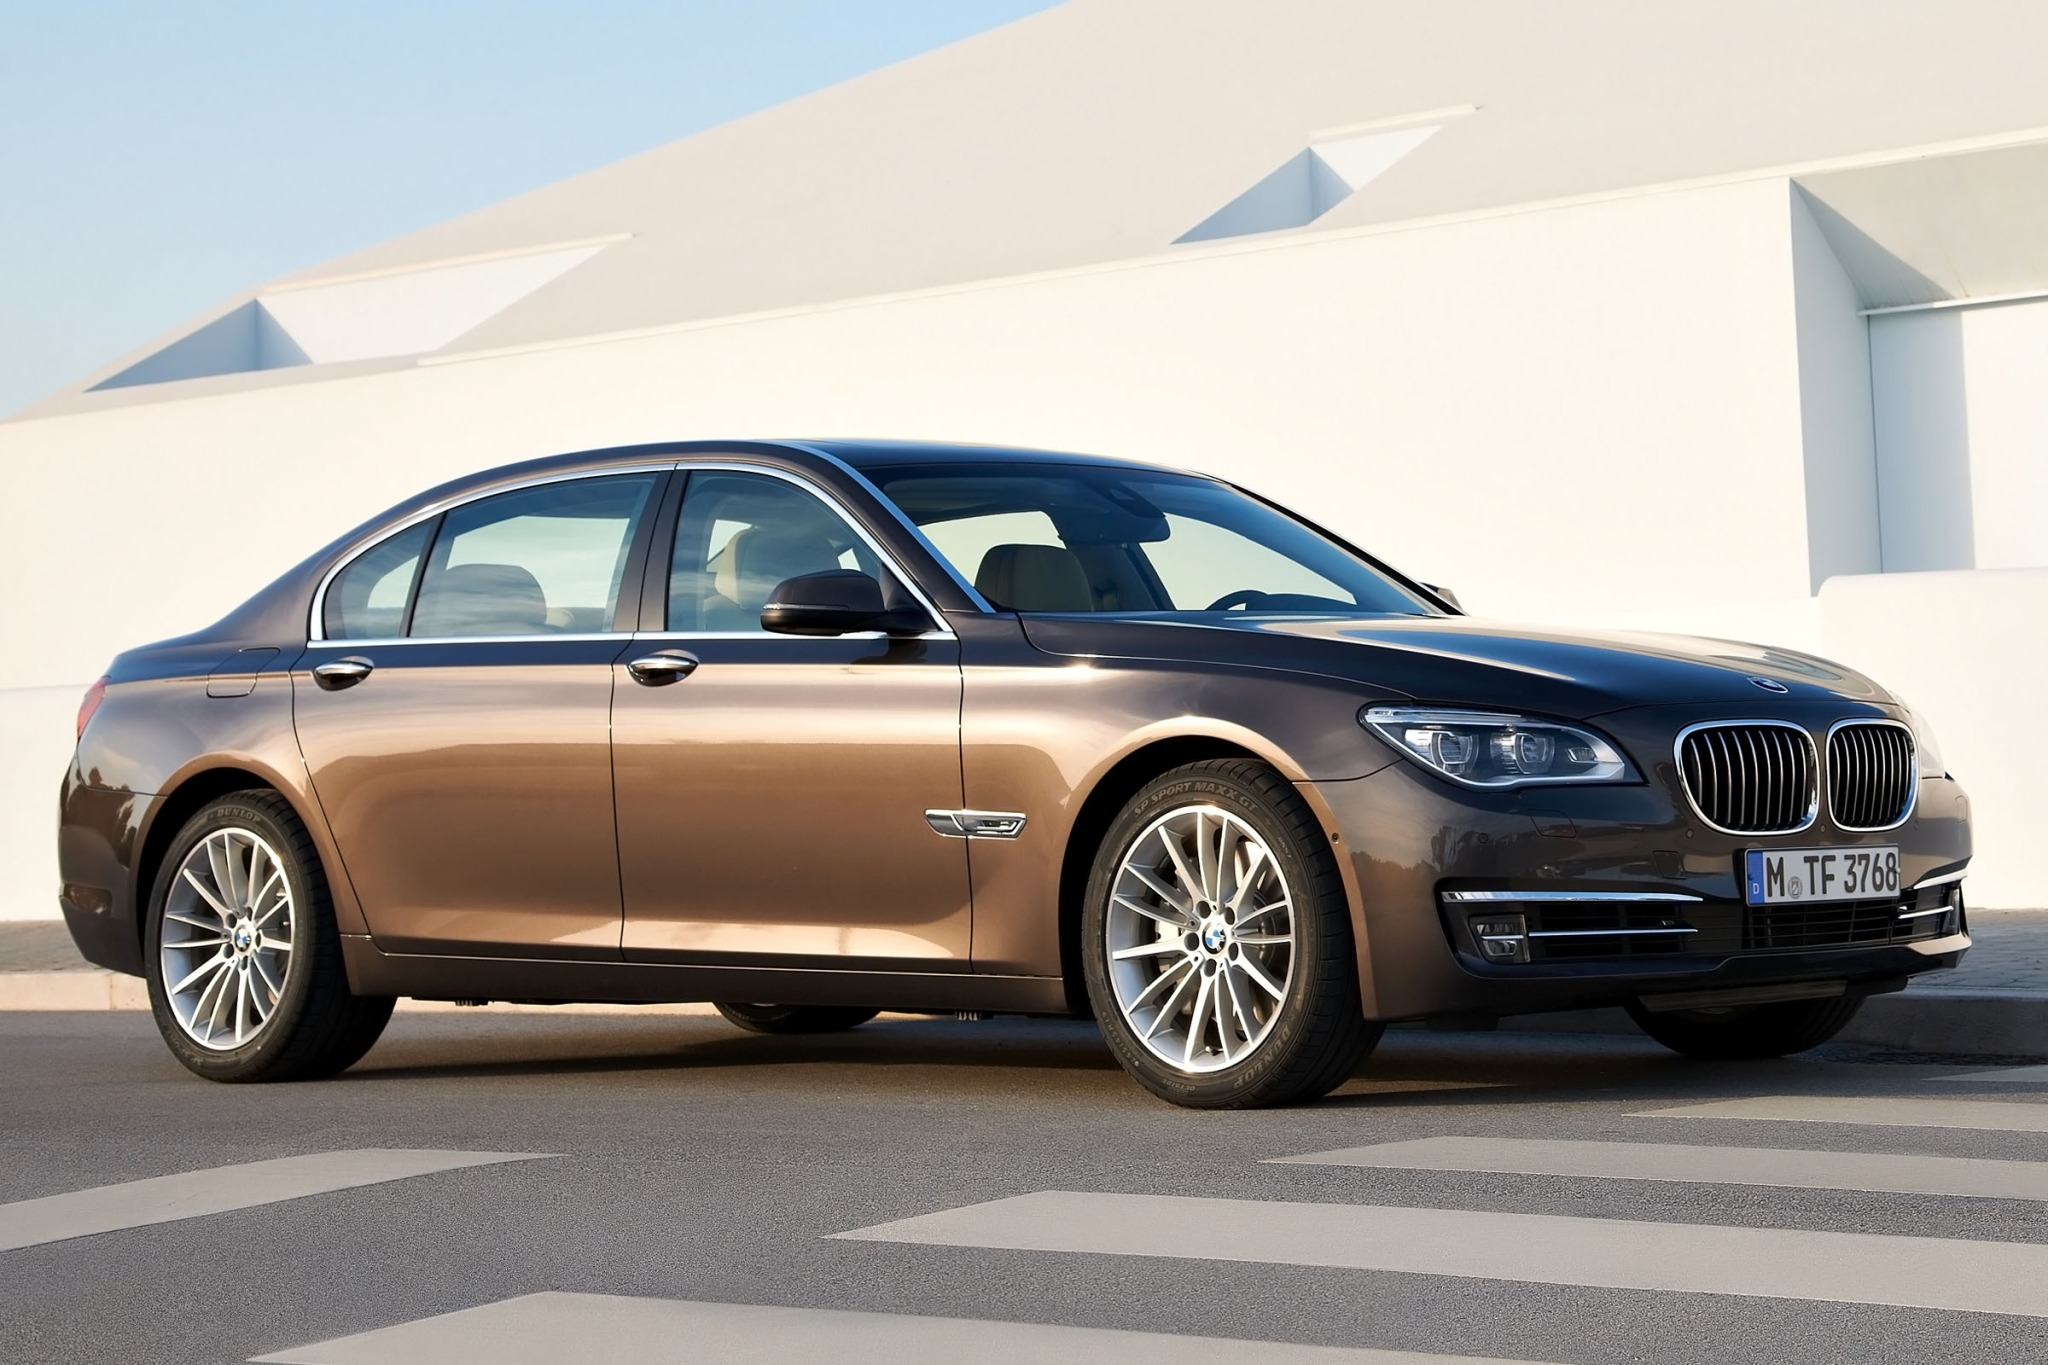 2015 Bmw 7 Series Image 1